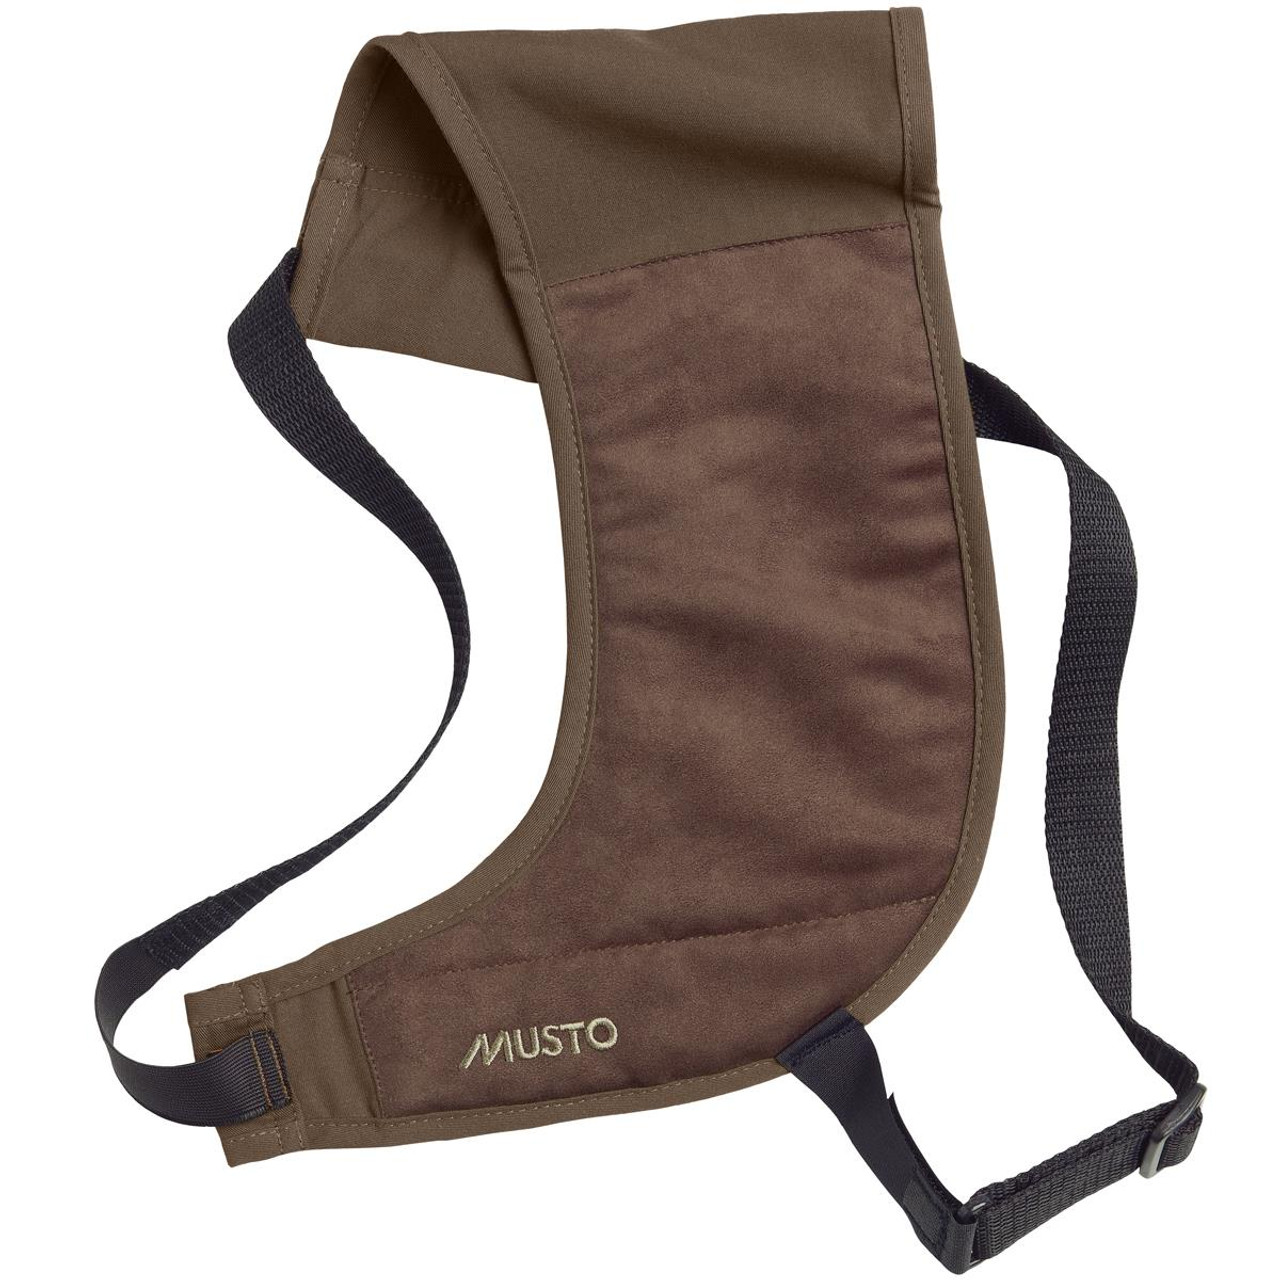 Dark Moss Musto D3O Recoil Shield